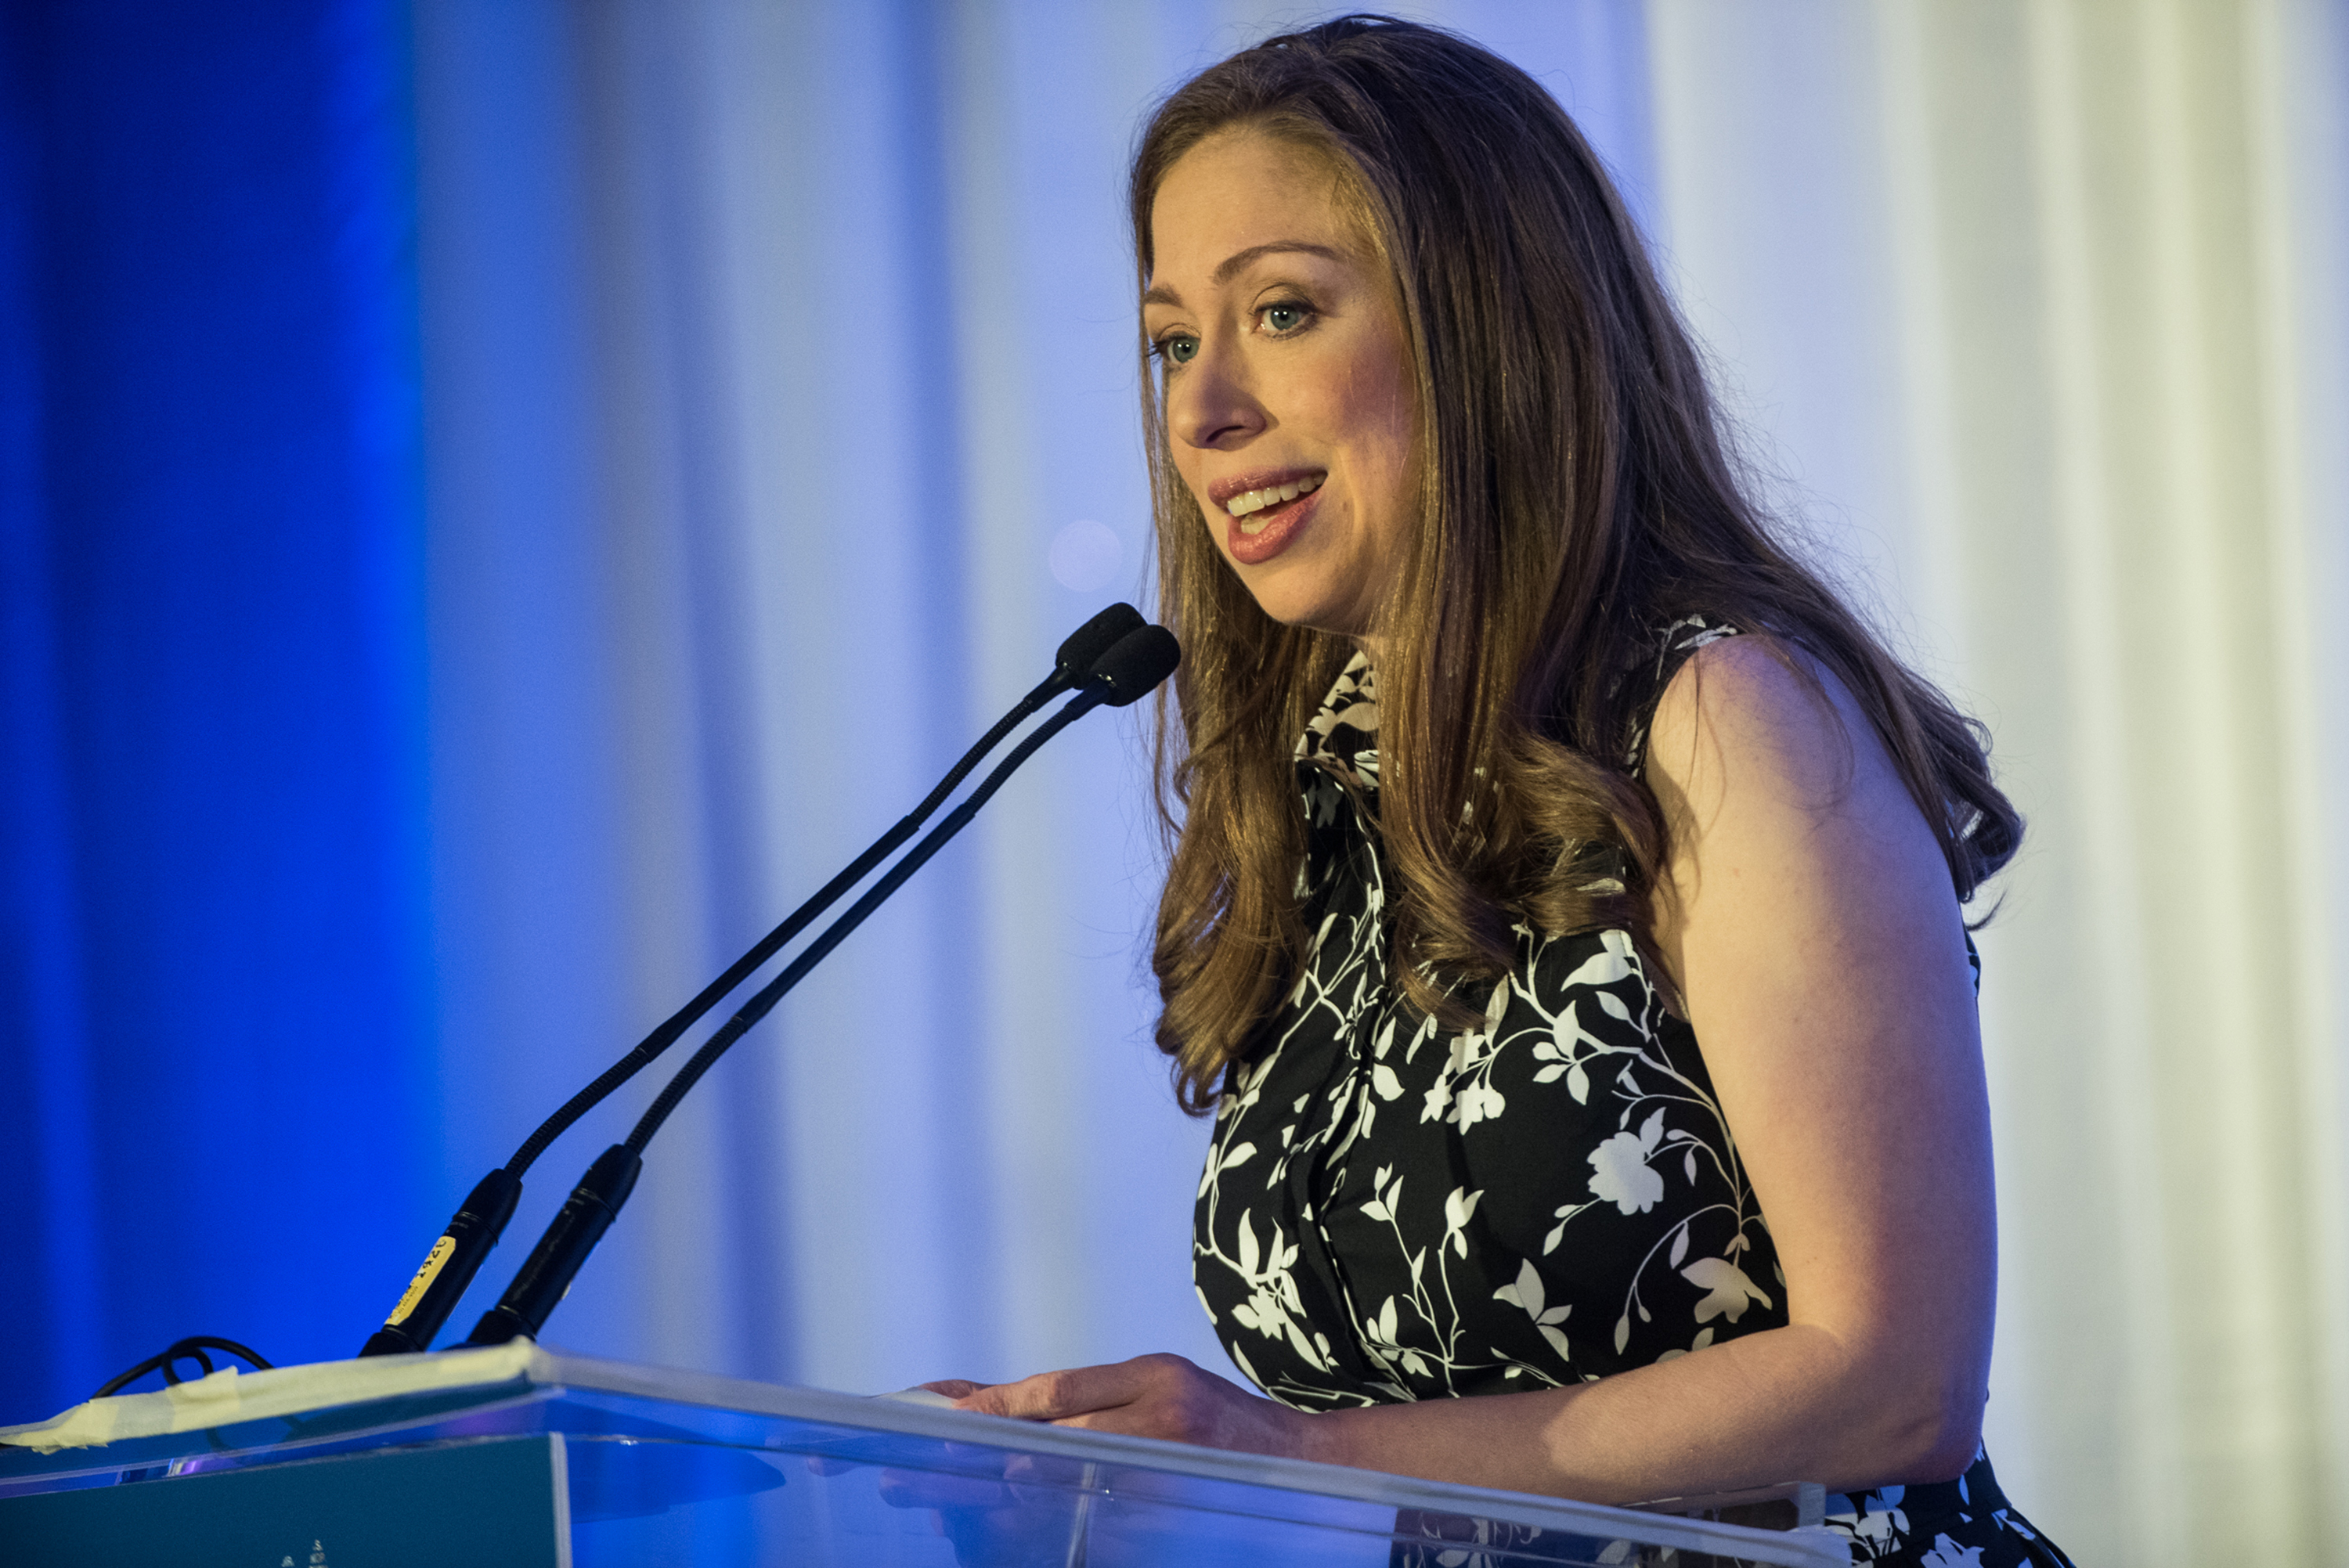 Chelsea Clinton will speak at tonight's Democratic National Convention. (Tribune News Service)